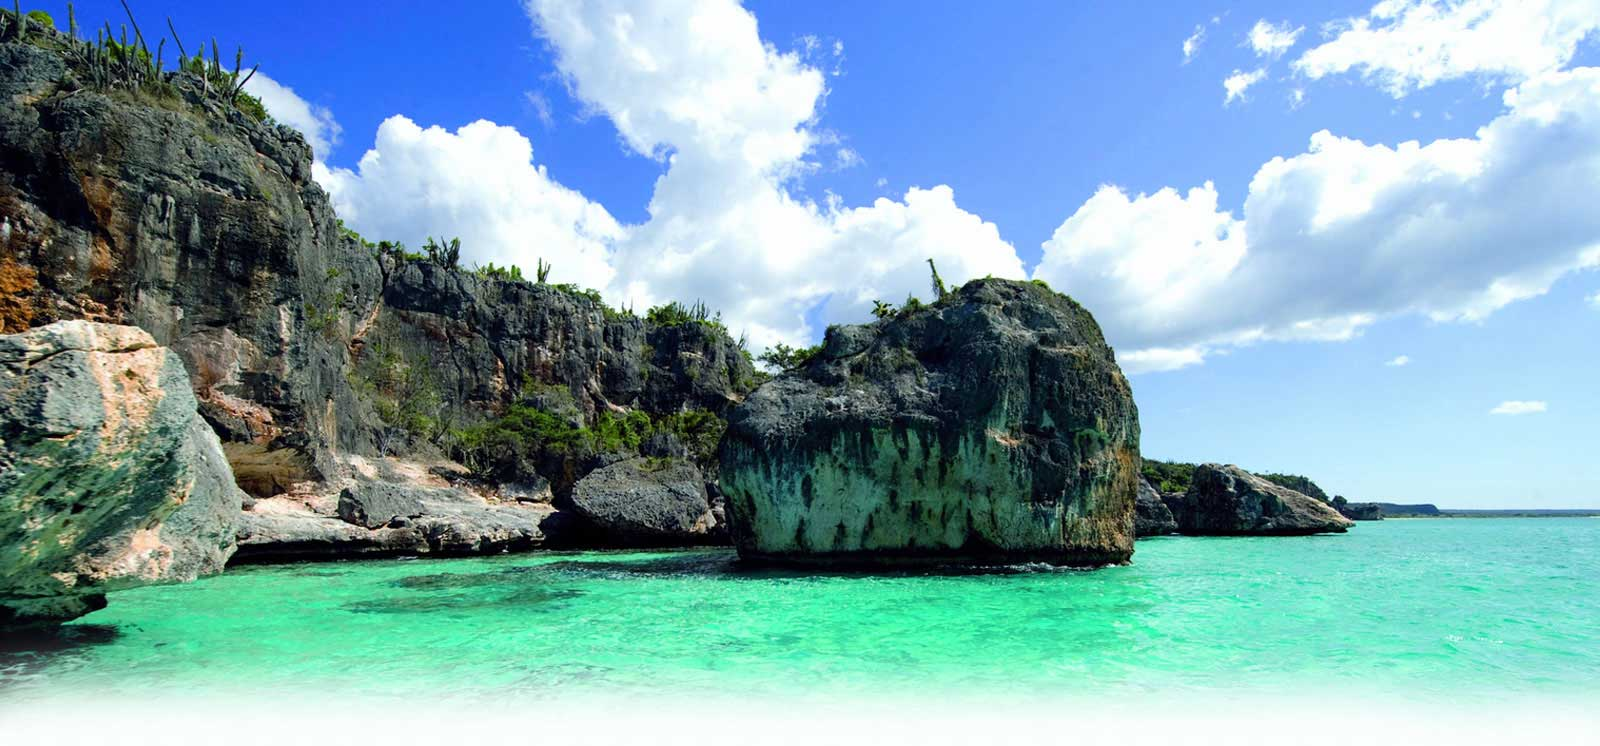 Dominican Republic Real Estate for Sale or Rent